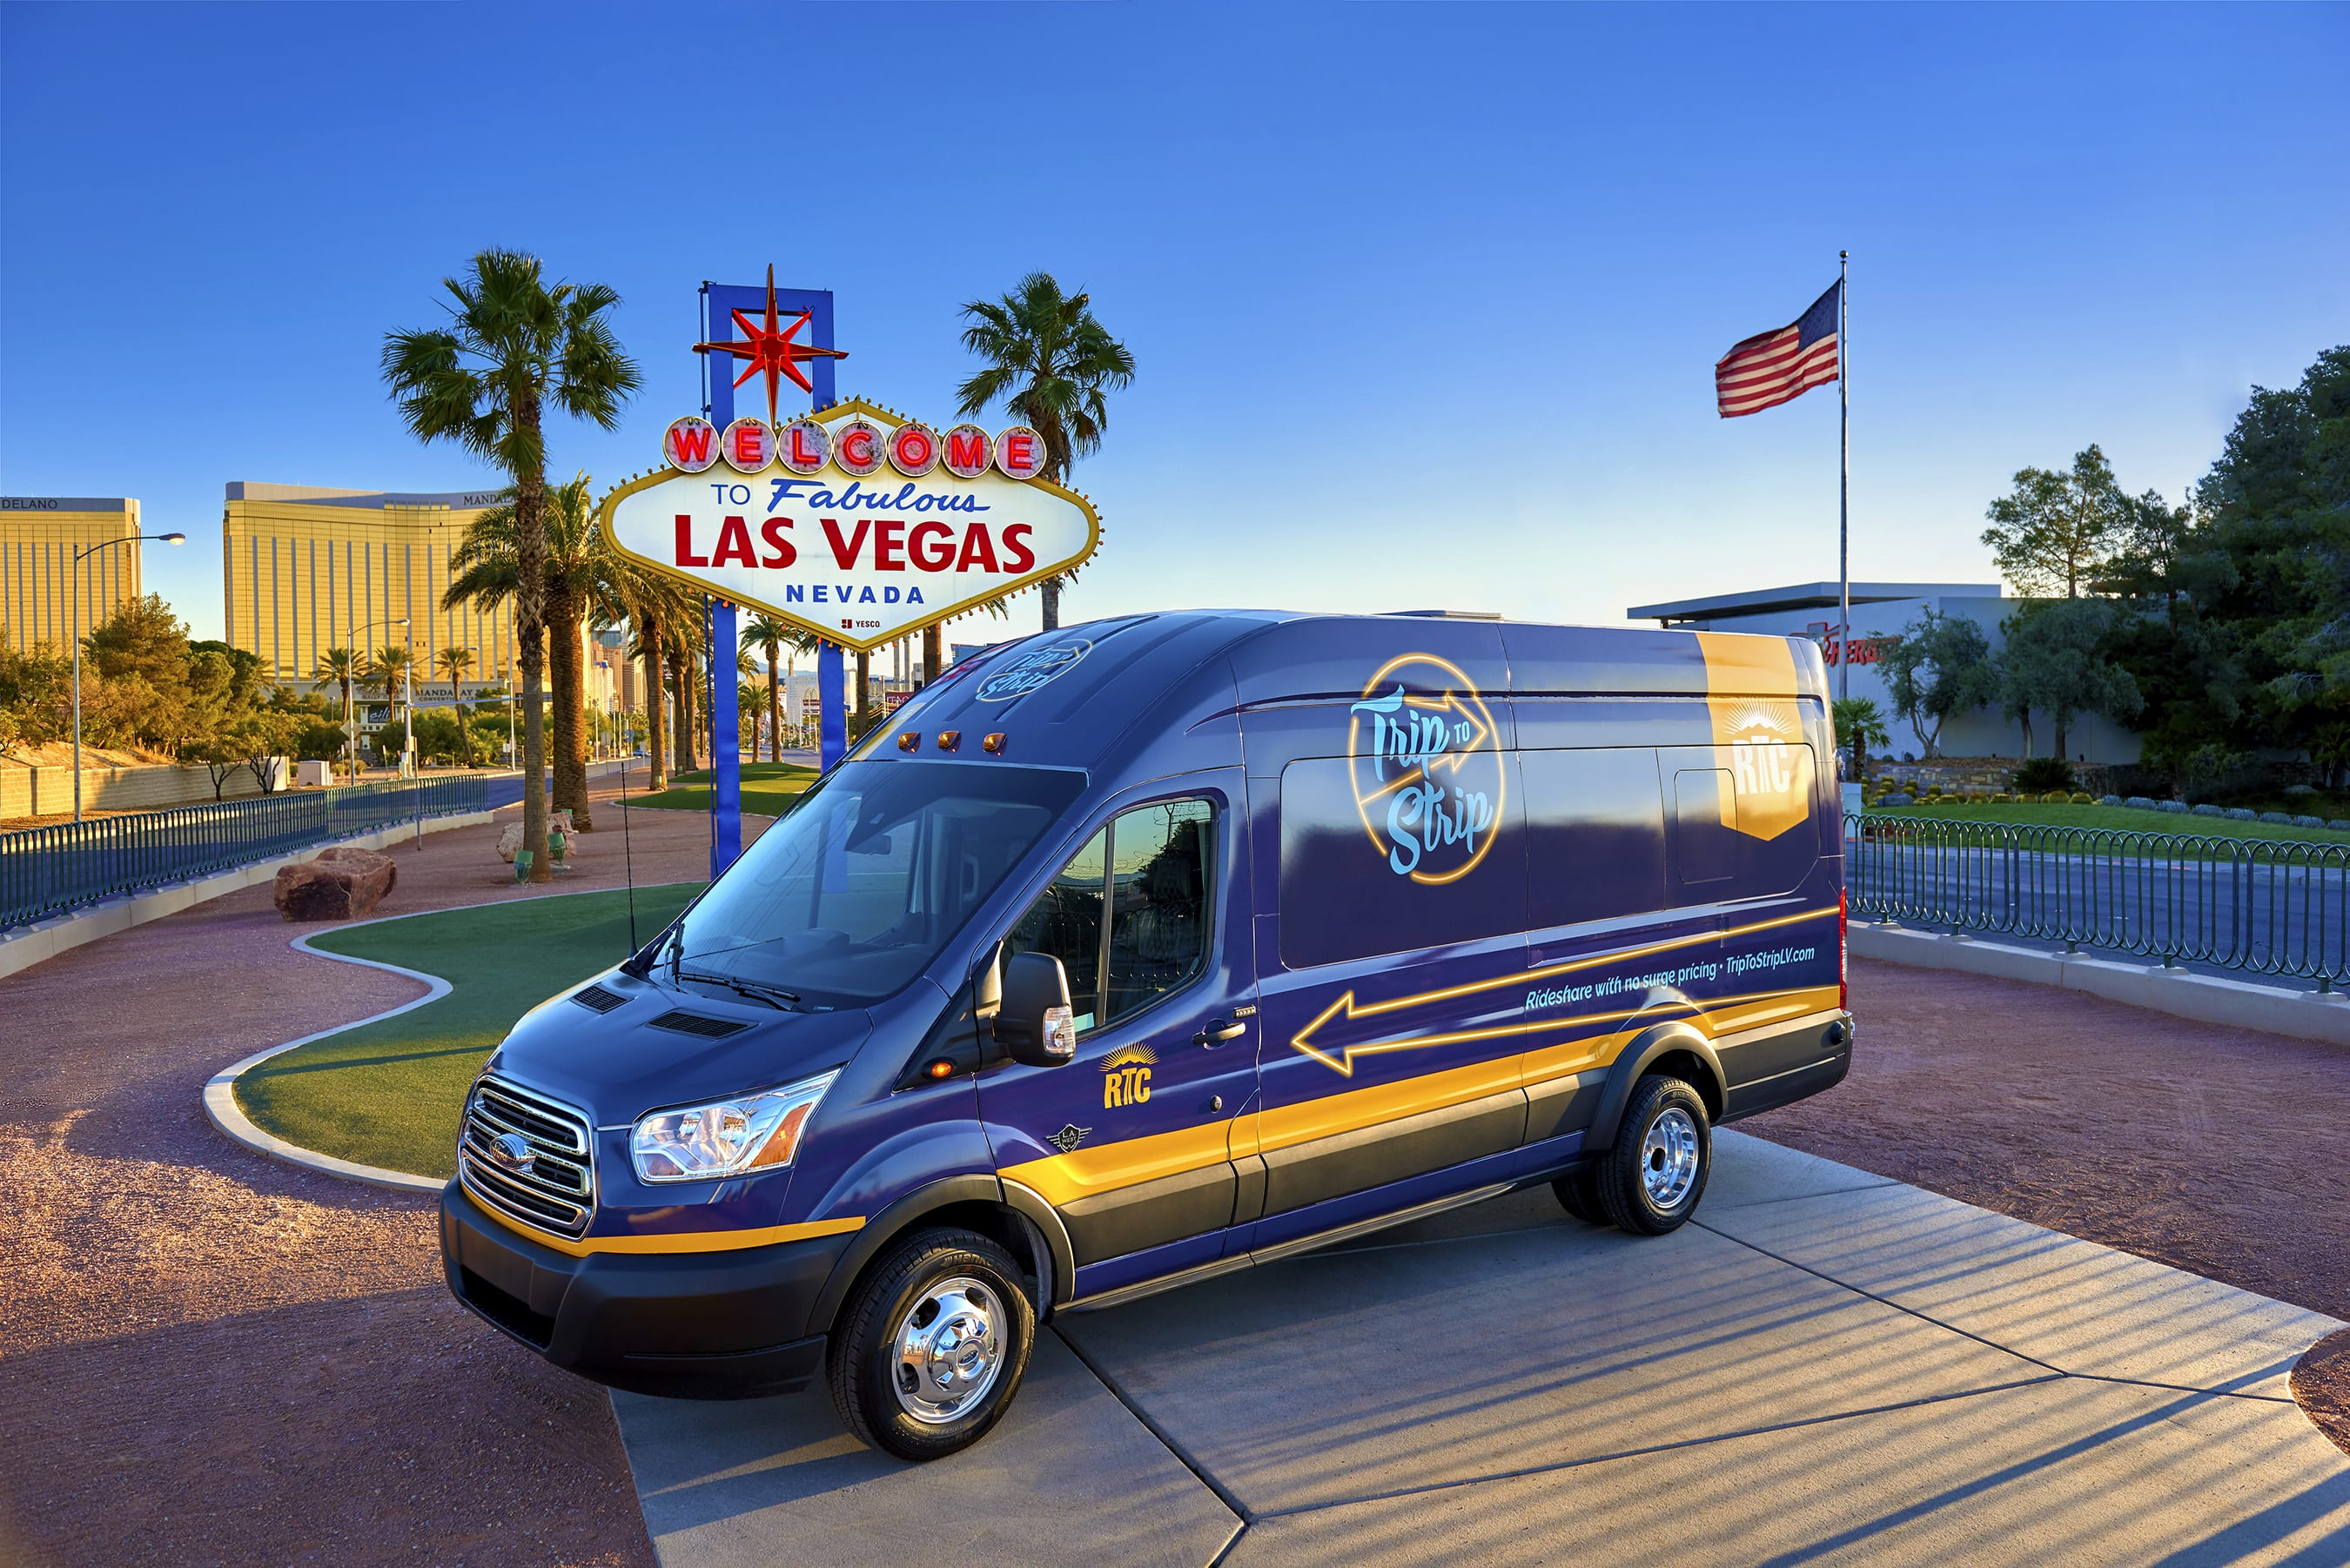 [Las Vegas] Trip To Strip Airport Transfers NO SURGE PRICING EVER Fares to/from Vegas Strip or Downtown - From $6 Per Rider, One Way